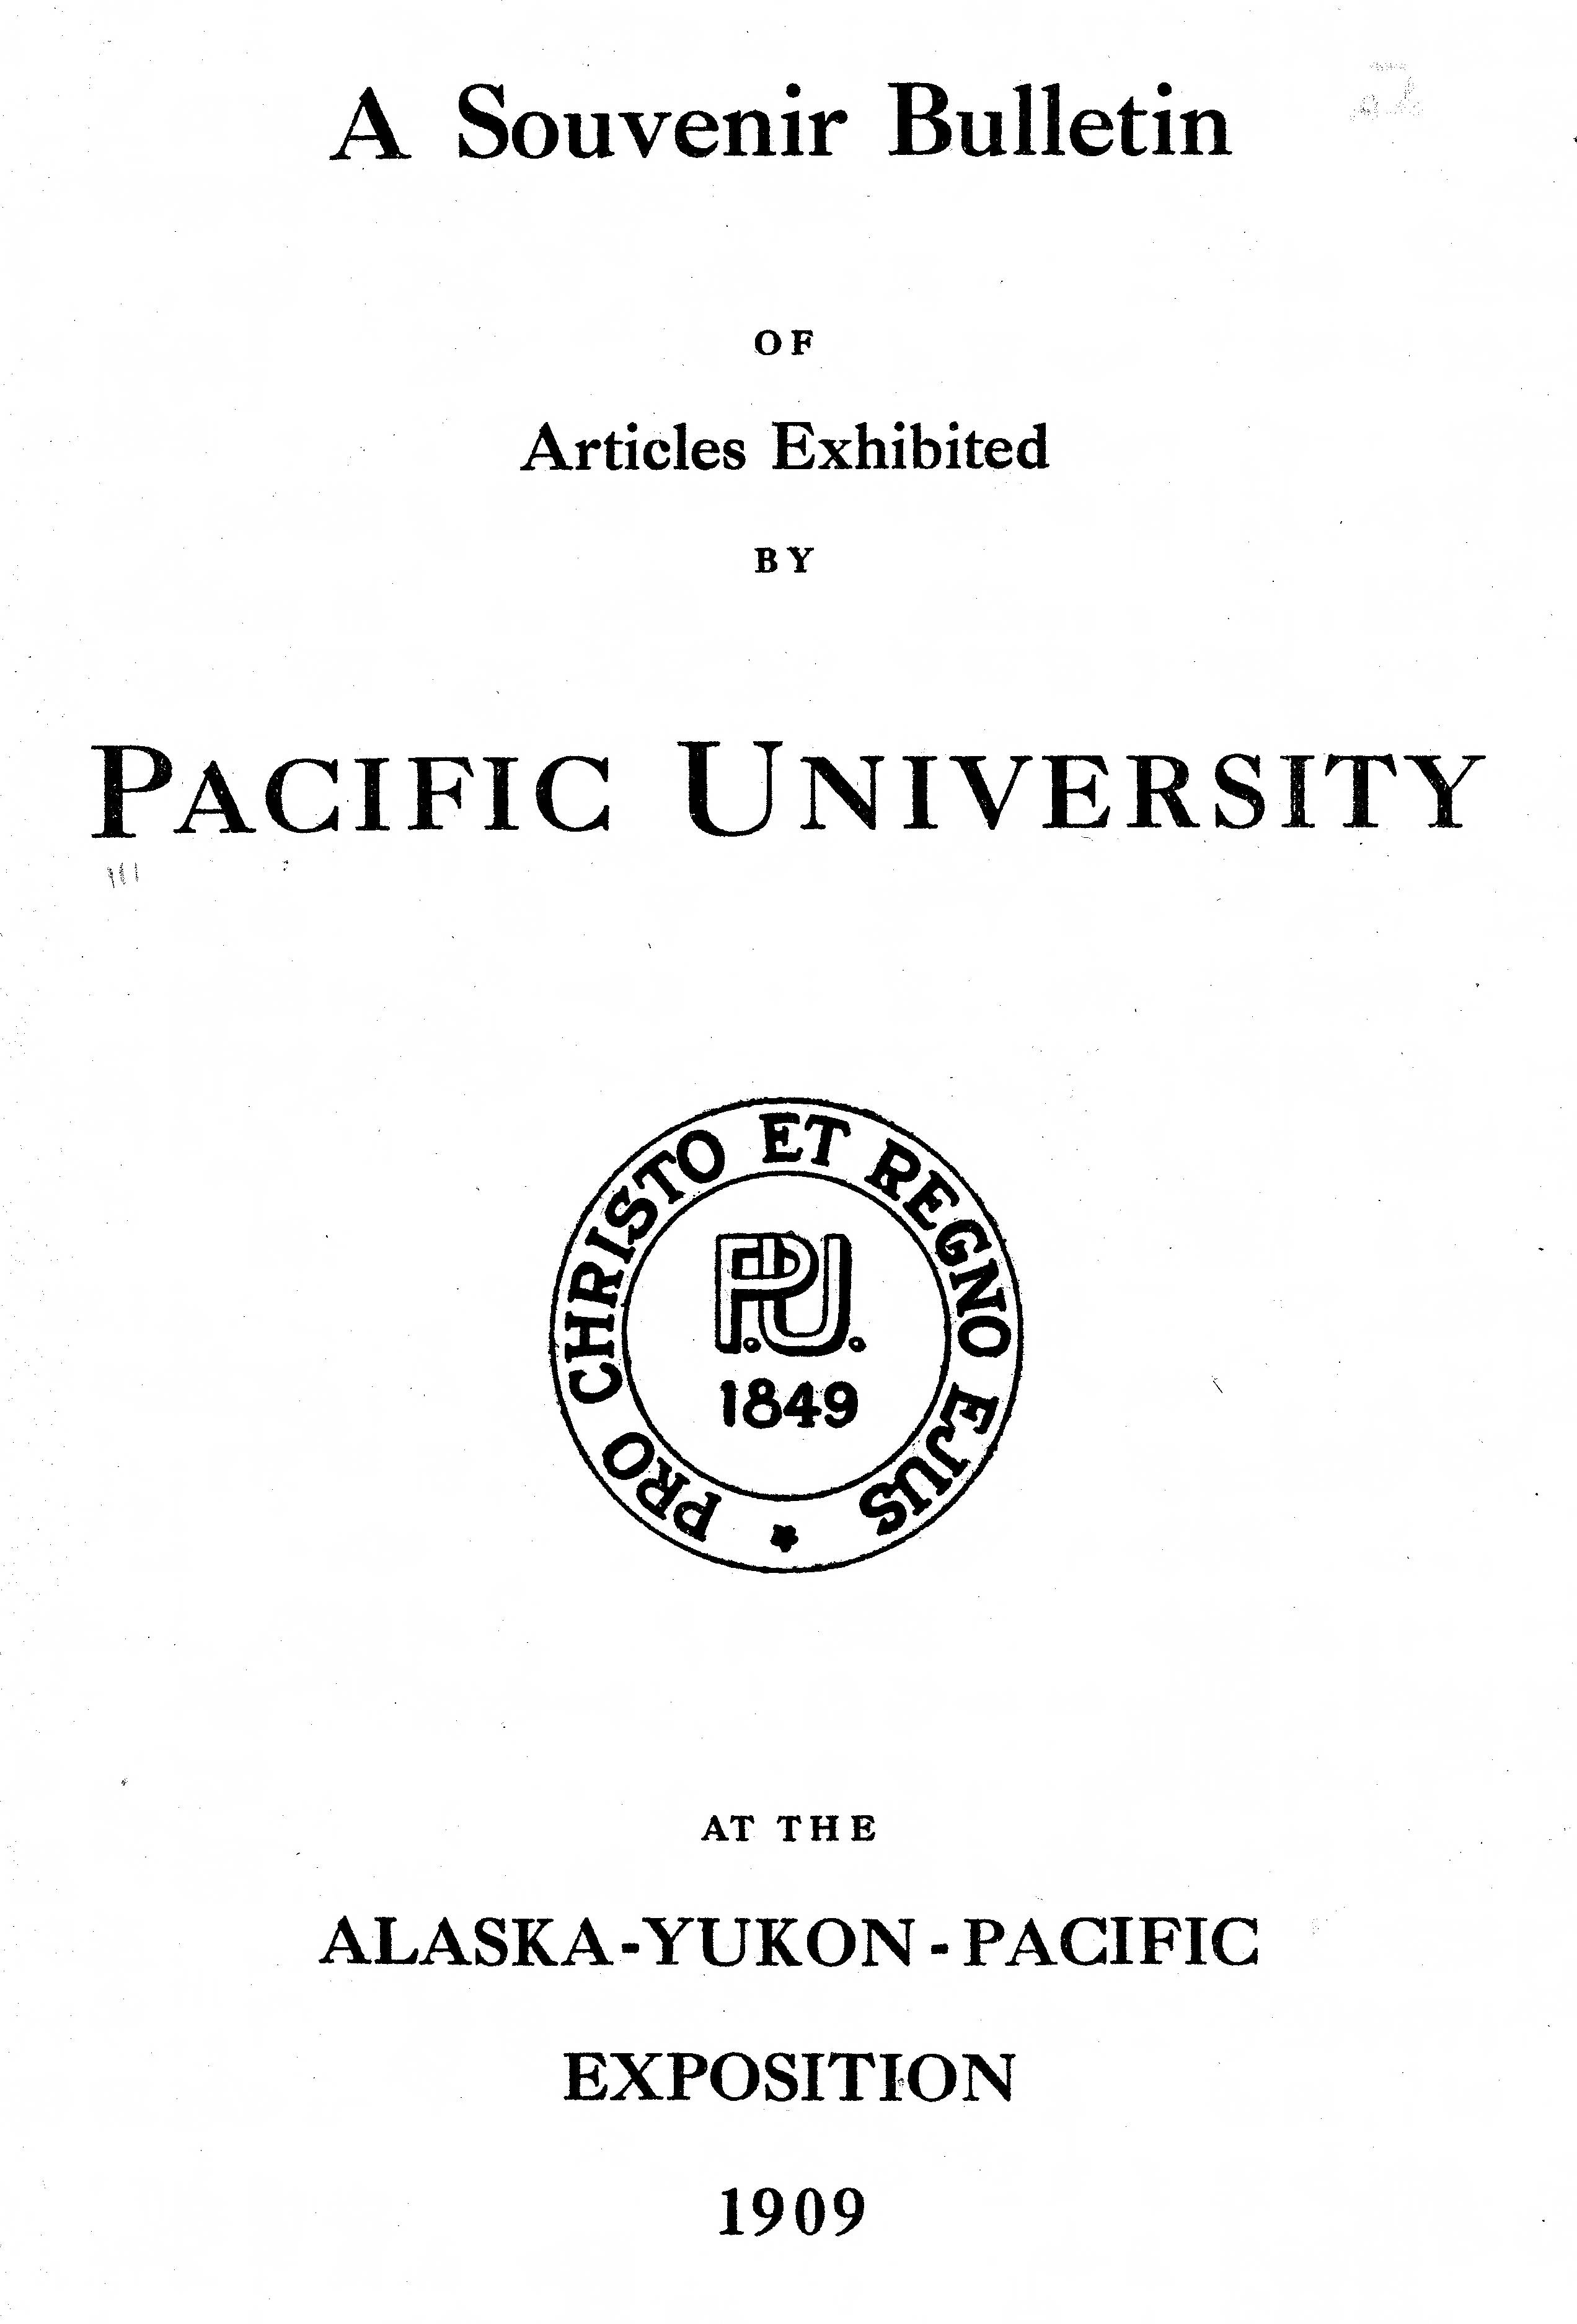 Souvenir bulletin of articles exhibited by Pacific University at Alaska-Yukon-Pacific Exposition, 1909